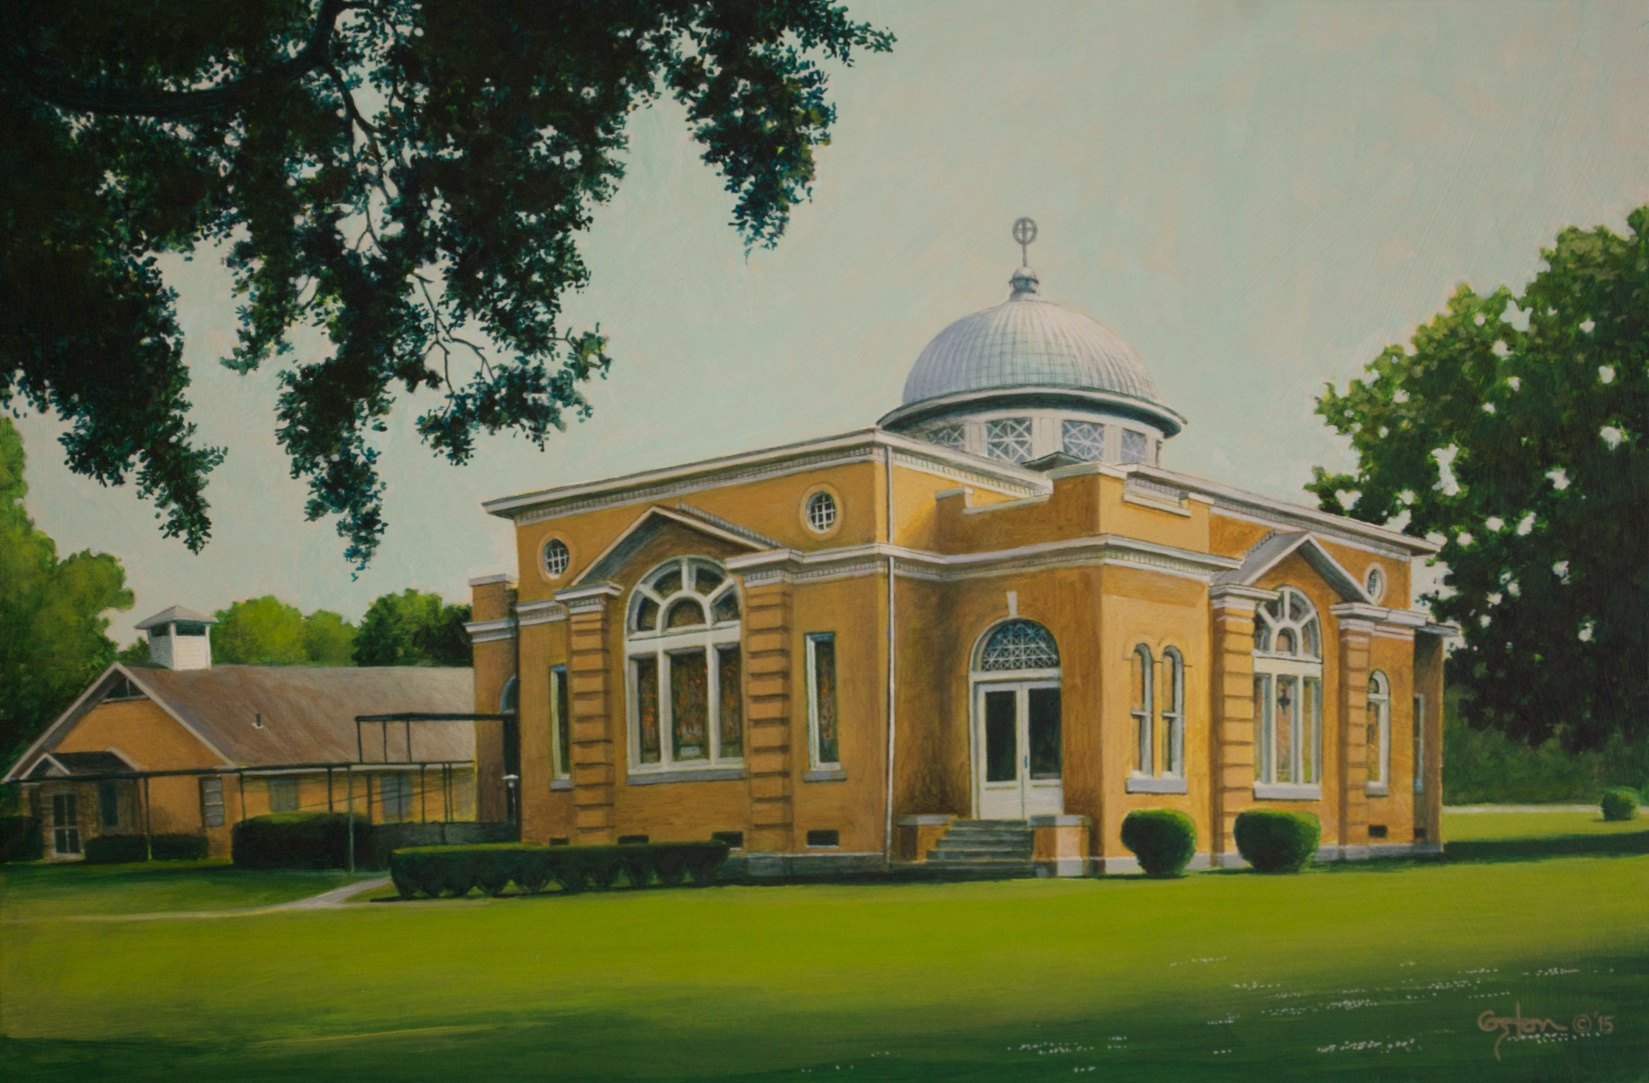 Tillar Methodist Church, Daniel Coston, 2015